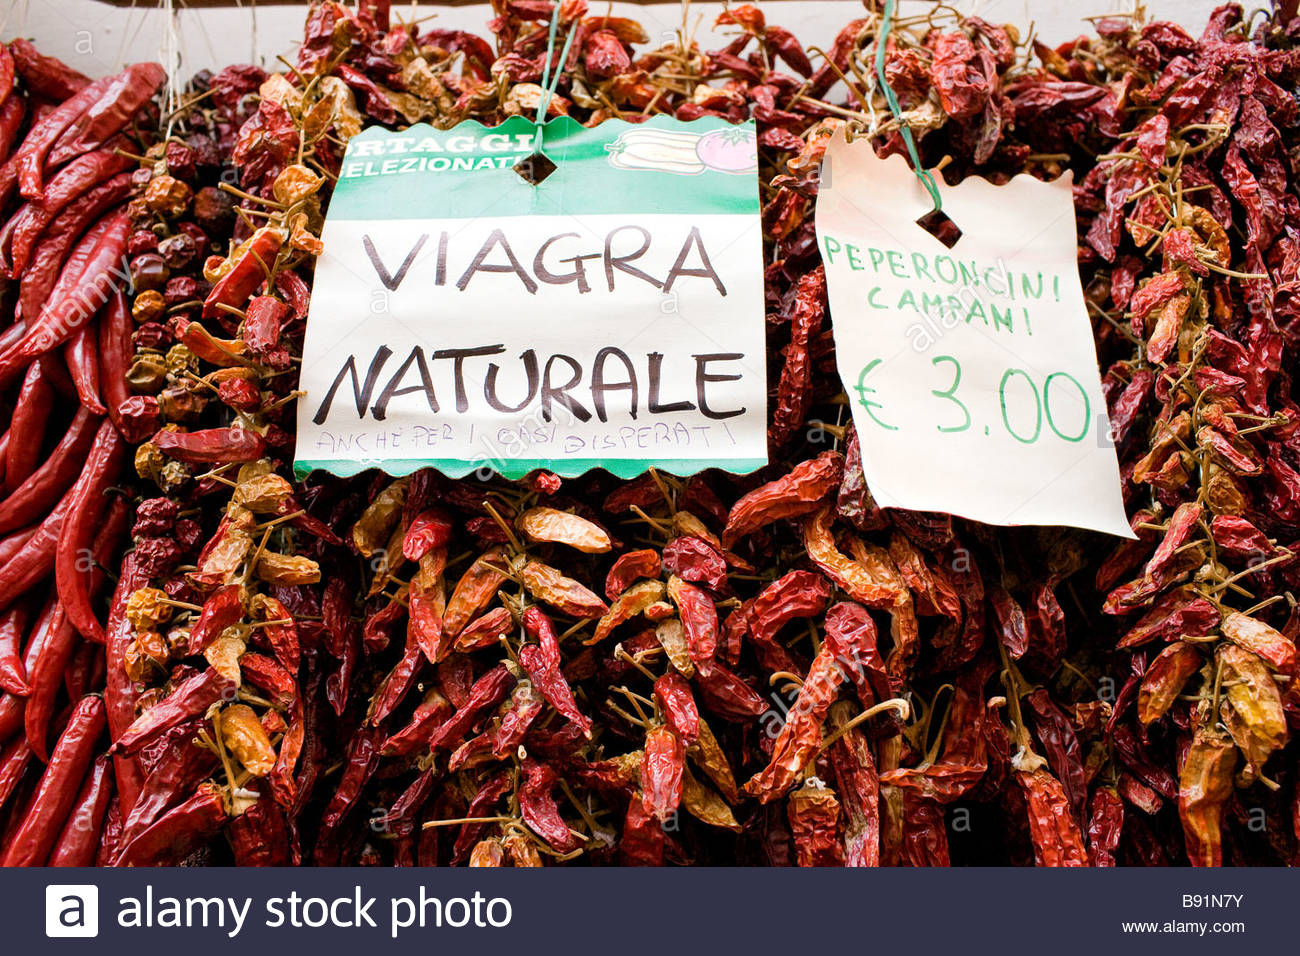 Natural herbal viagra